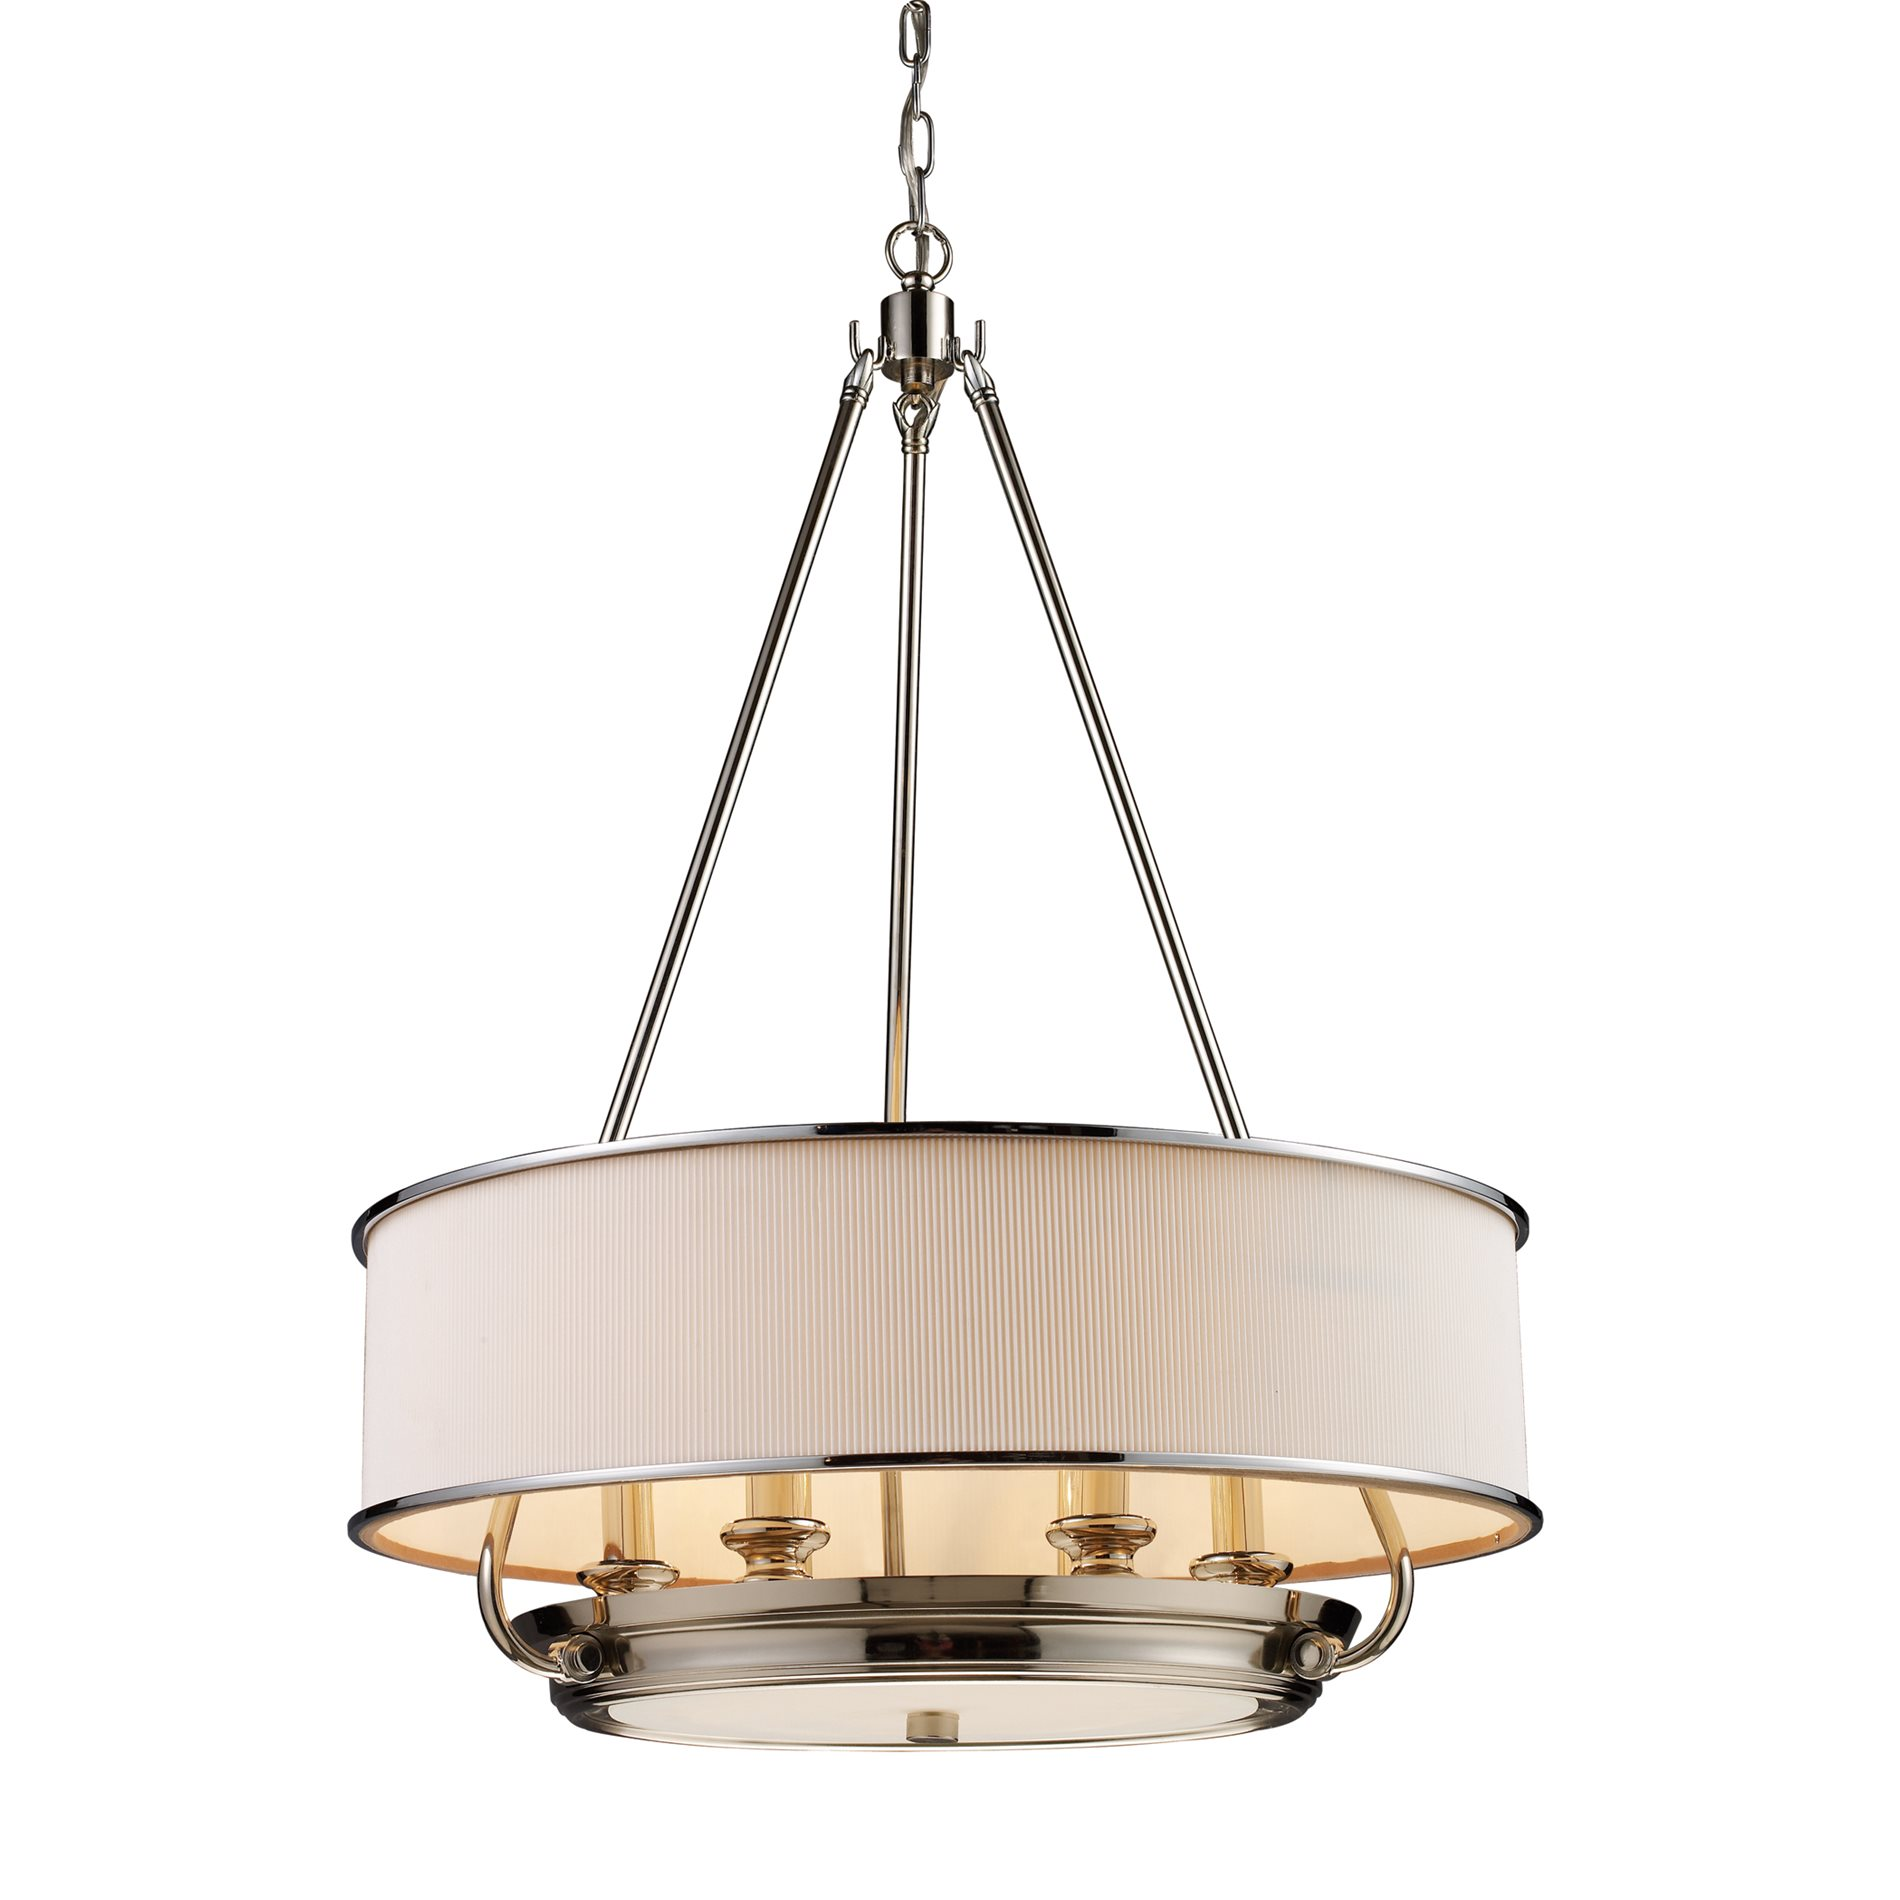 Elk Lighting Fans: Elk Lighting 20063/6 Lureau Transitional Drum Chandelier